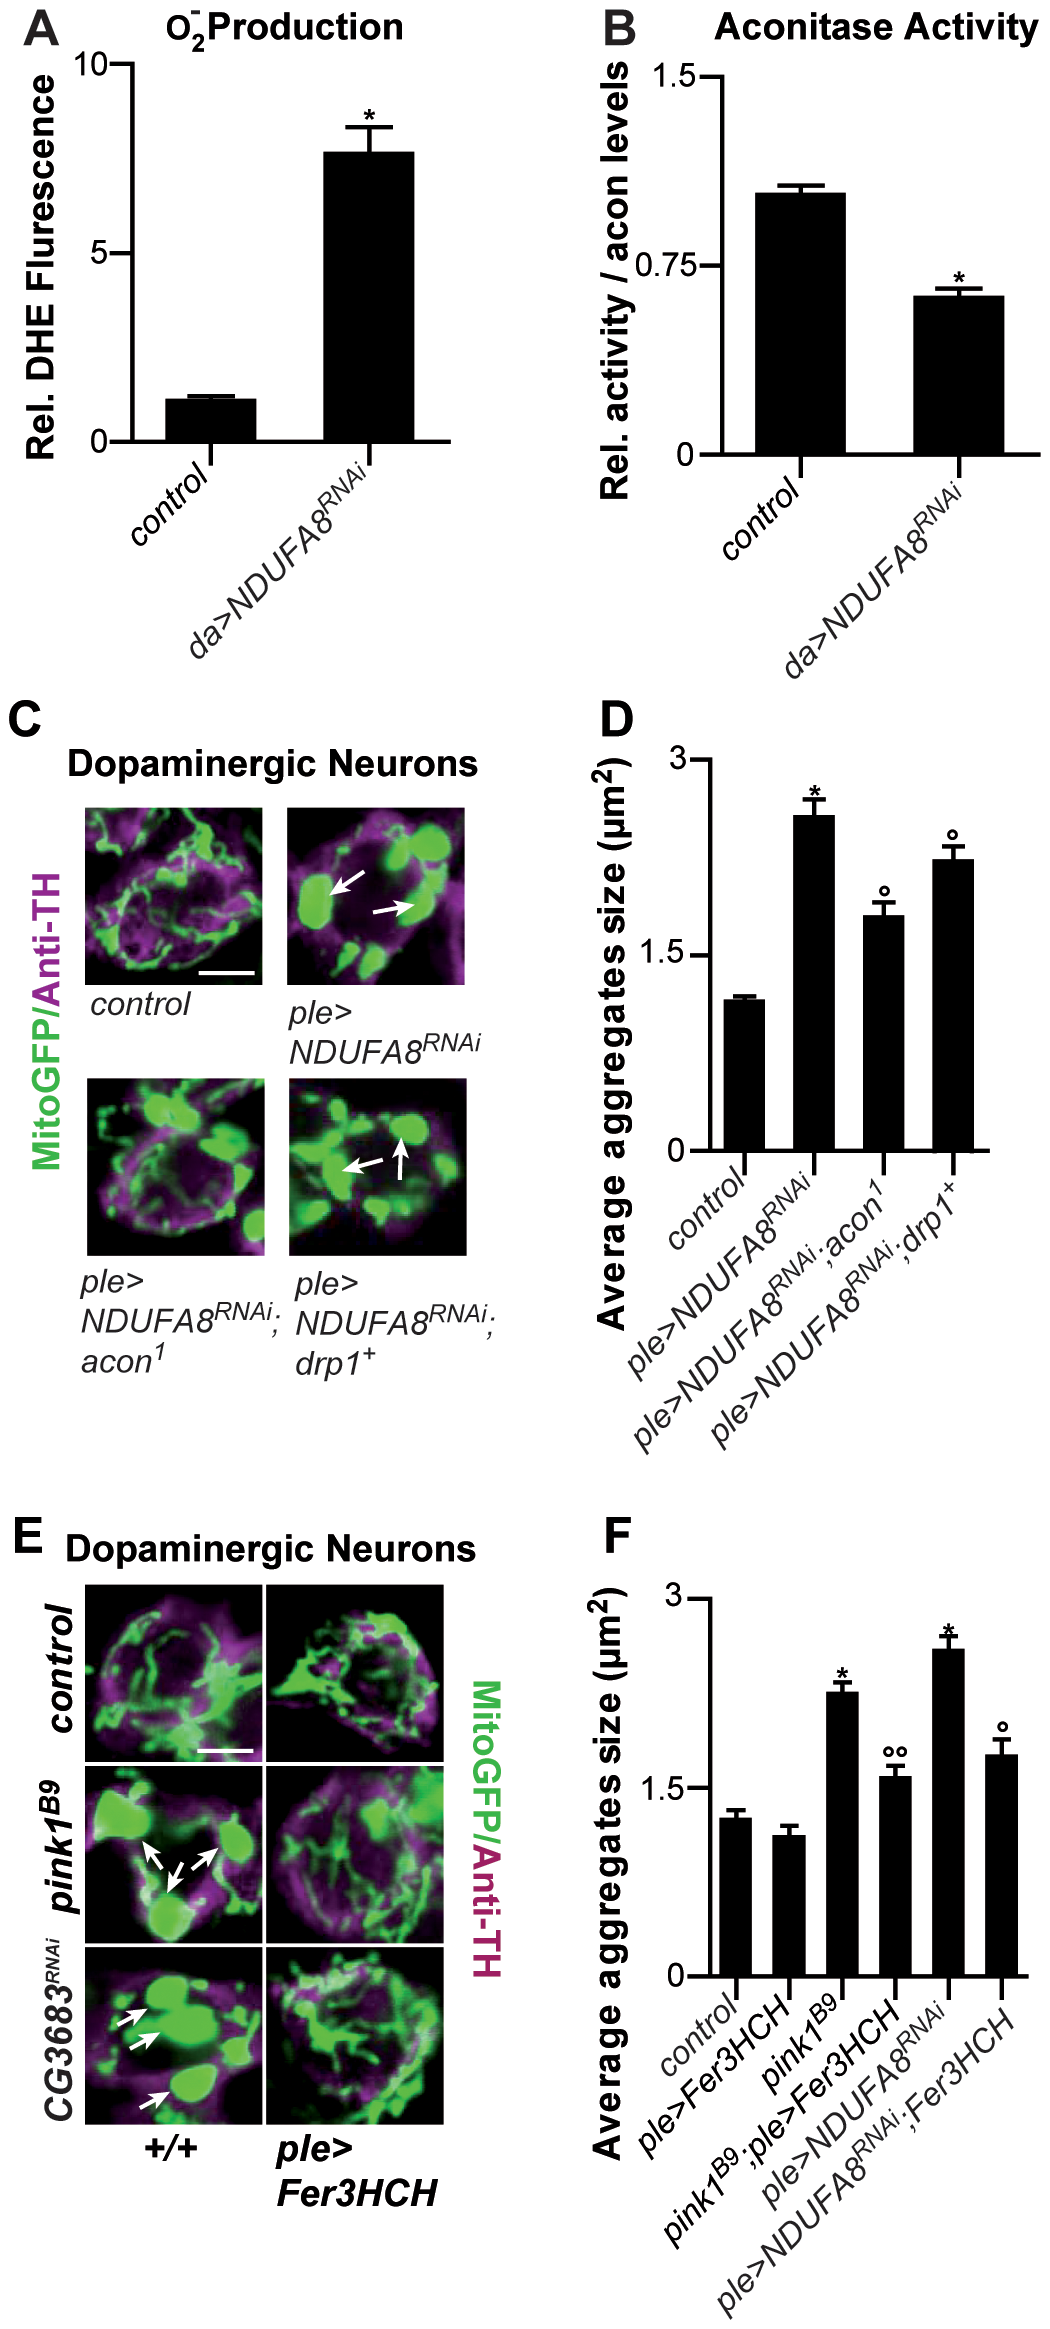 Mitochondrial morphological defects in DA neurons of Complex I–deficient and <b><i>pink1<sup>B9</sup></i></b><b> flies involve iron-mediated toxicity.</b>